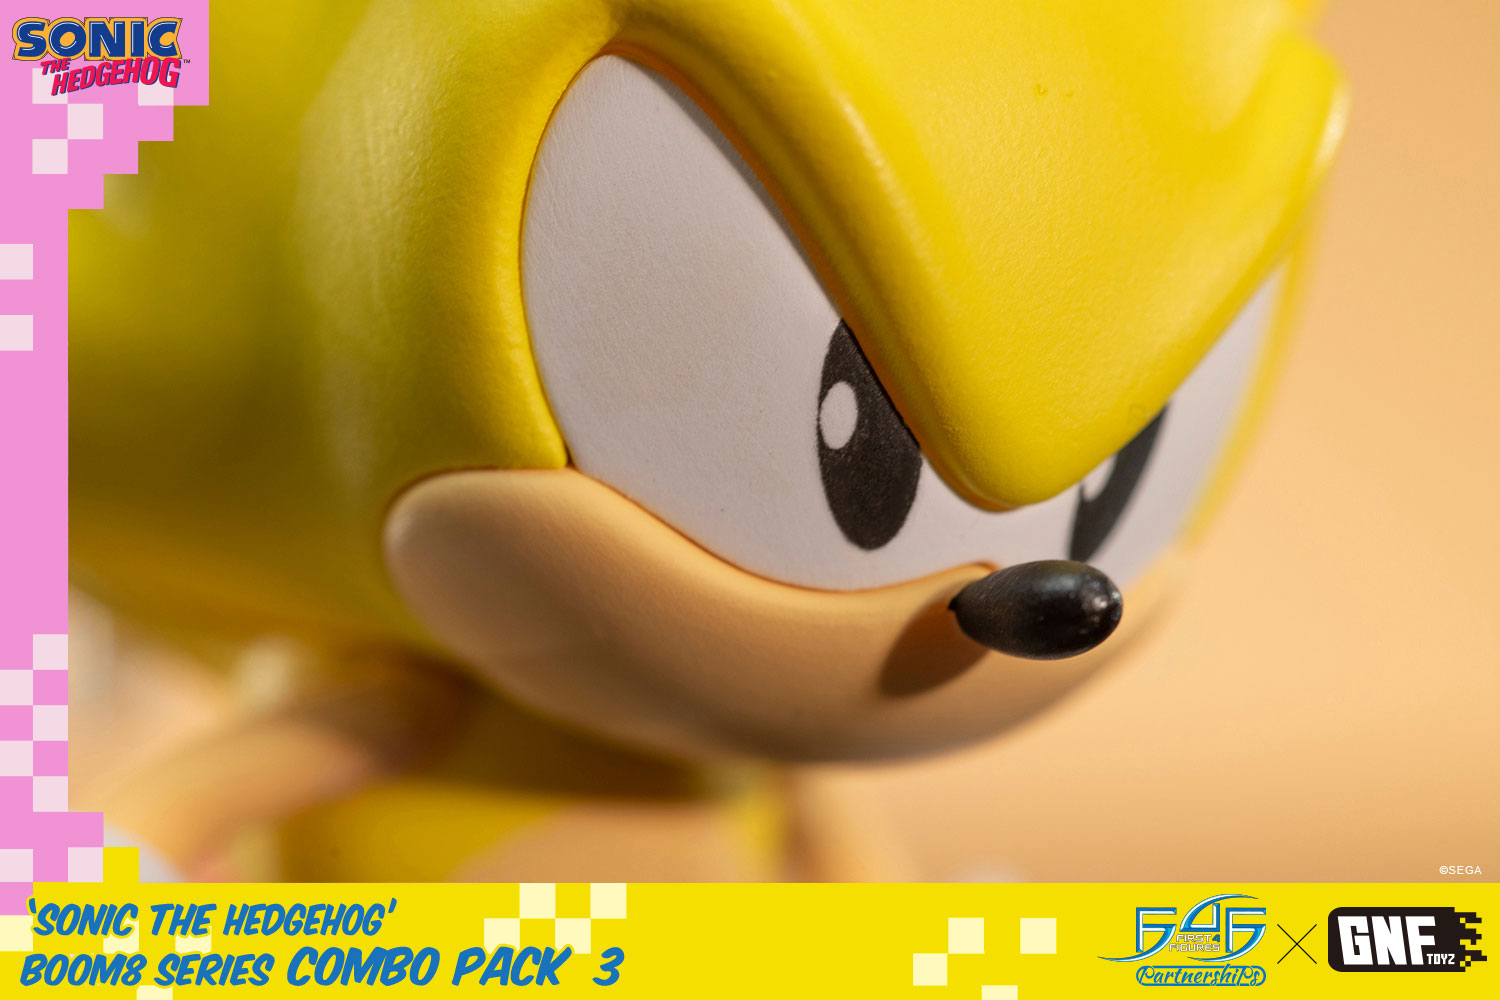 Sonic the Hedgehog Boom8 Series Volume 6